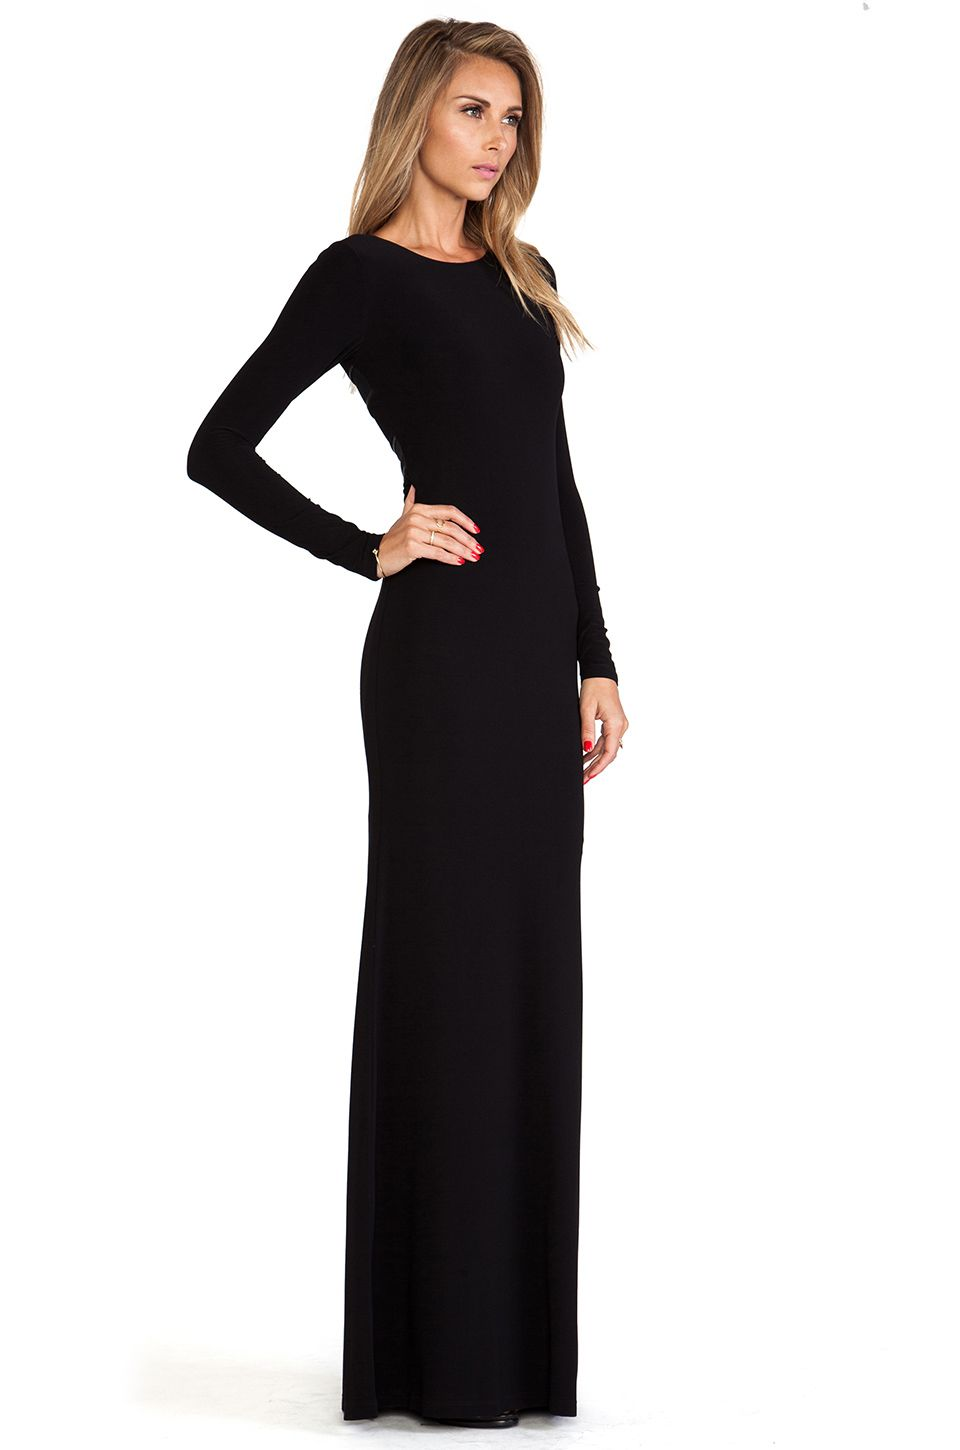 Alice olivia long sleeve maxi dress in black outfit pinterest